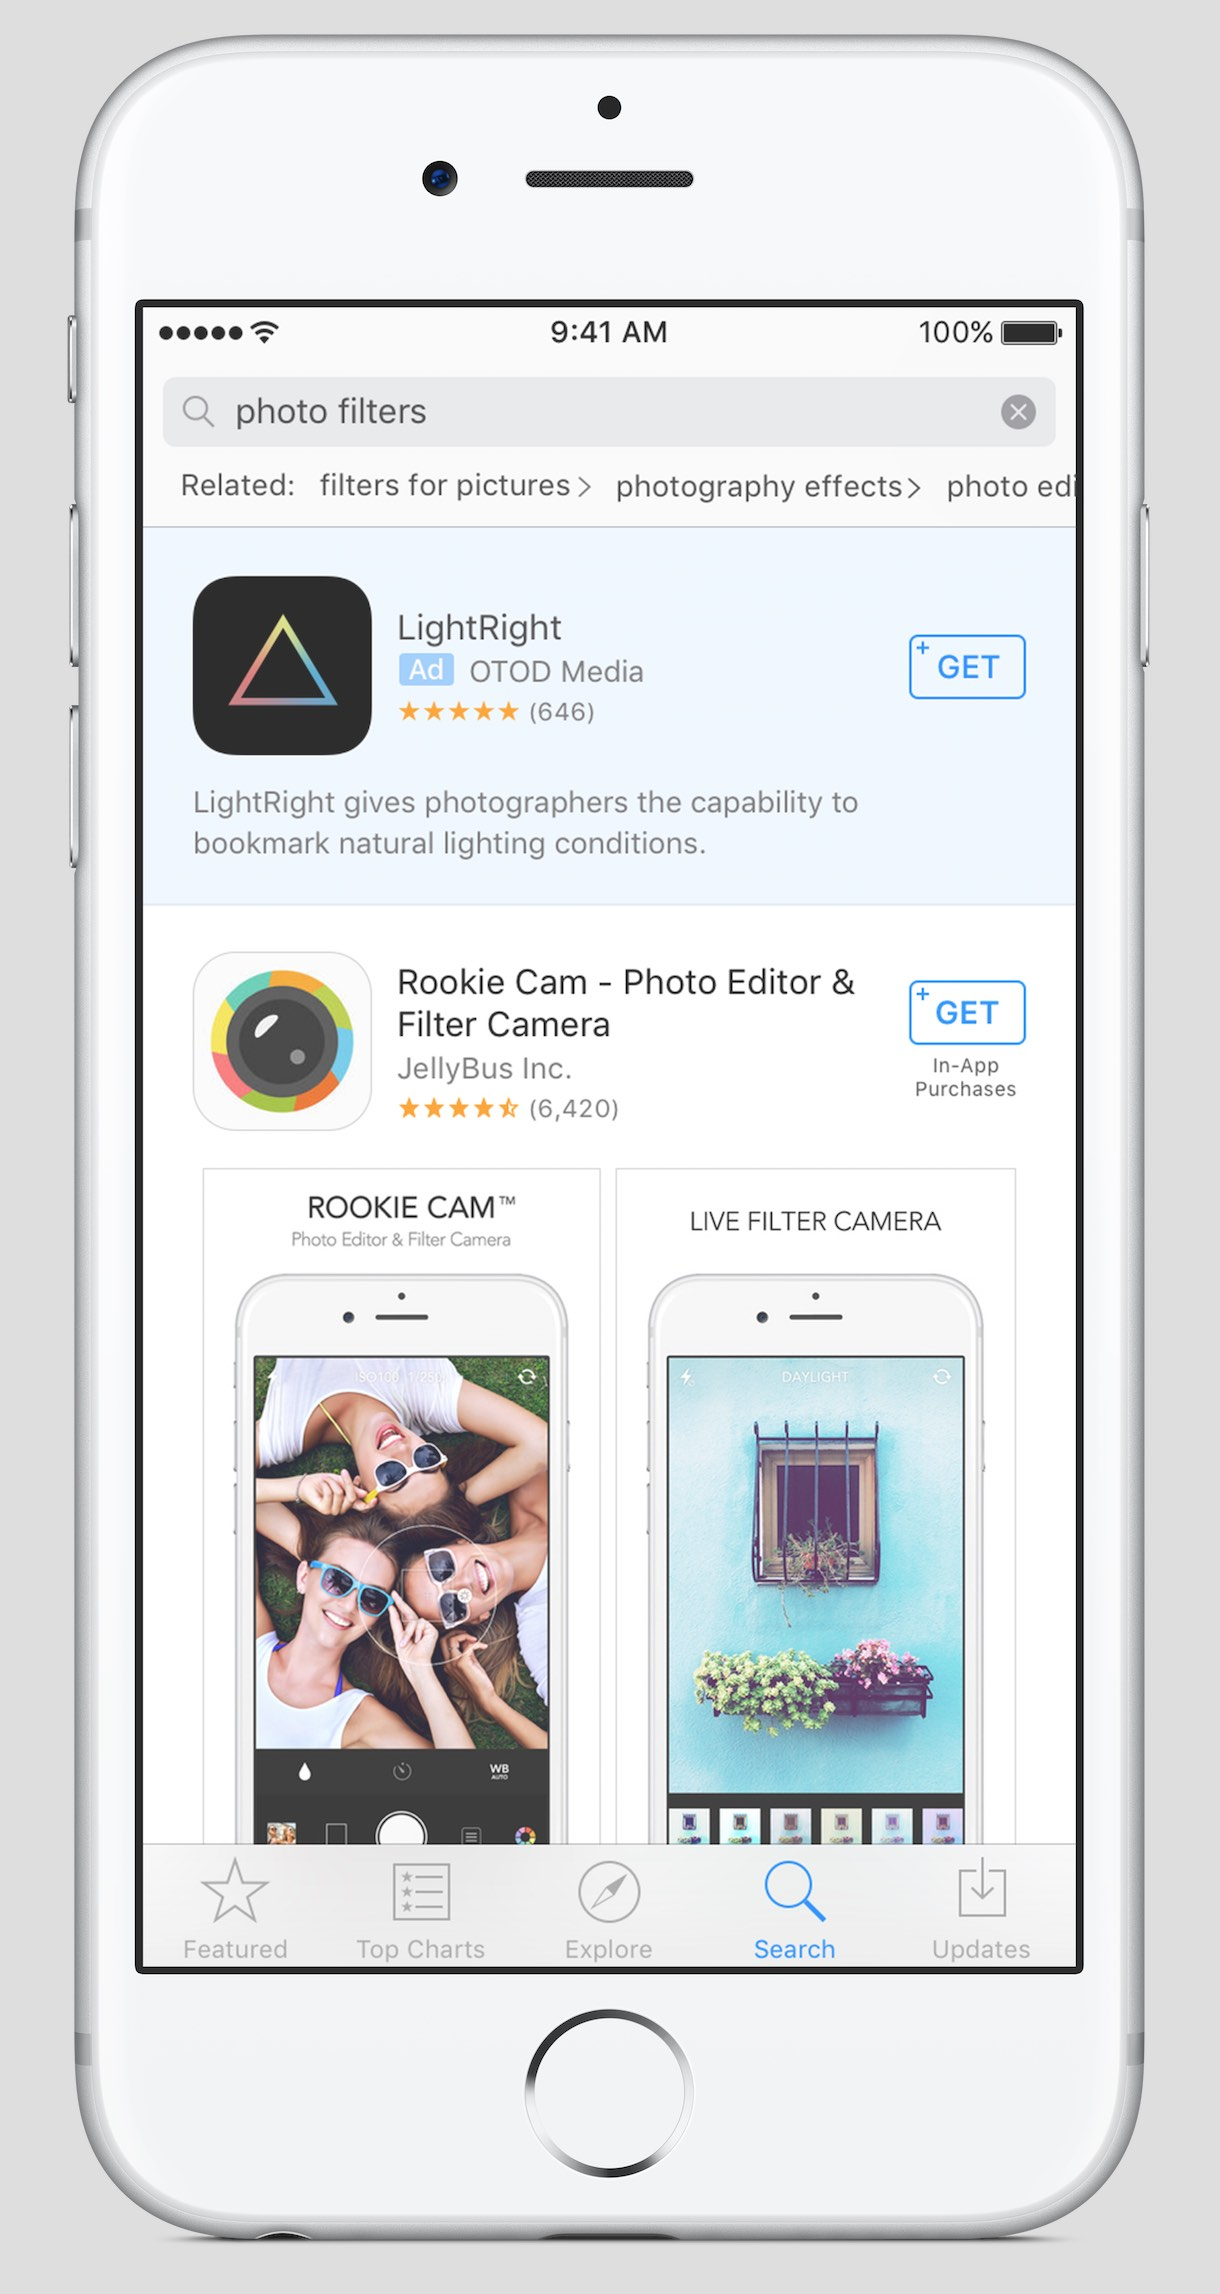 Daring Fireball: The New App Store: Subscription Pricing